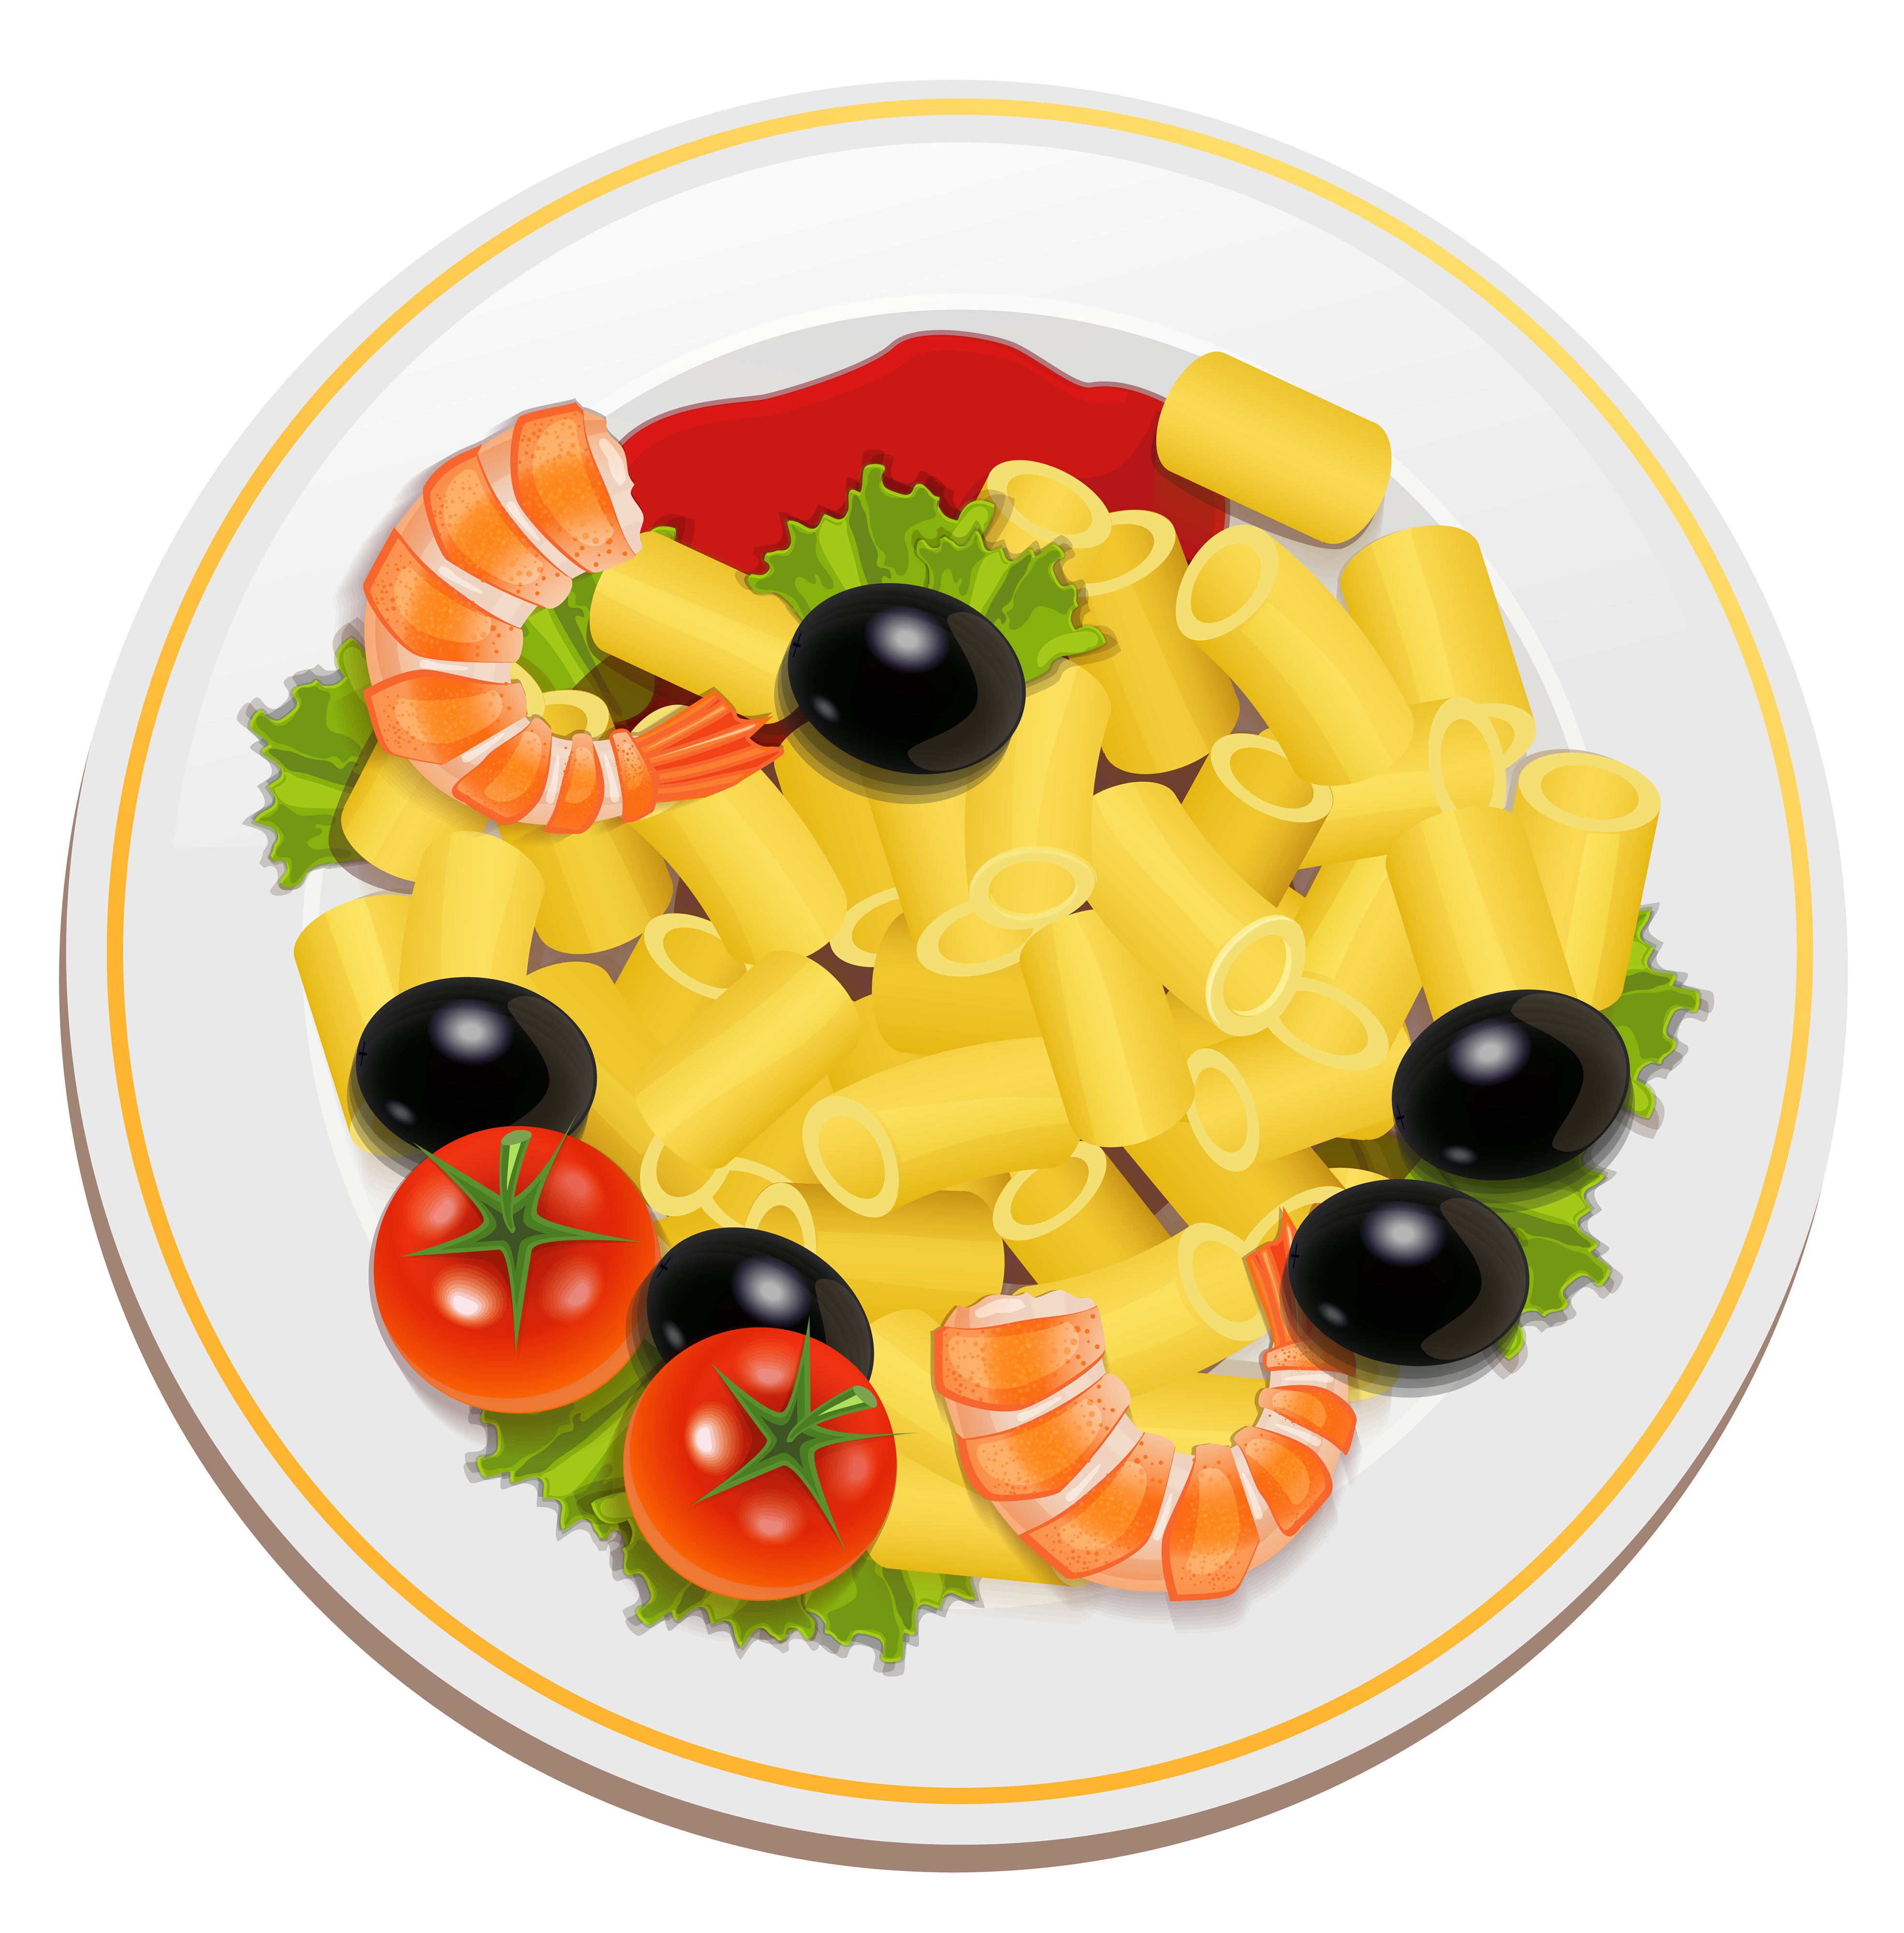 Pasta with shrimps png. Noodles clipart spagetti